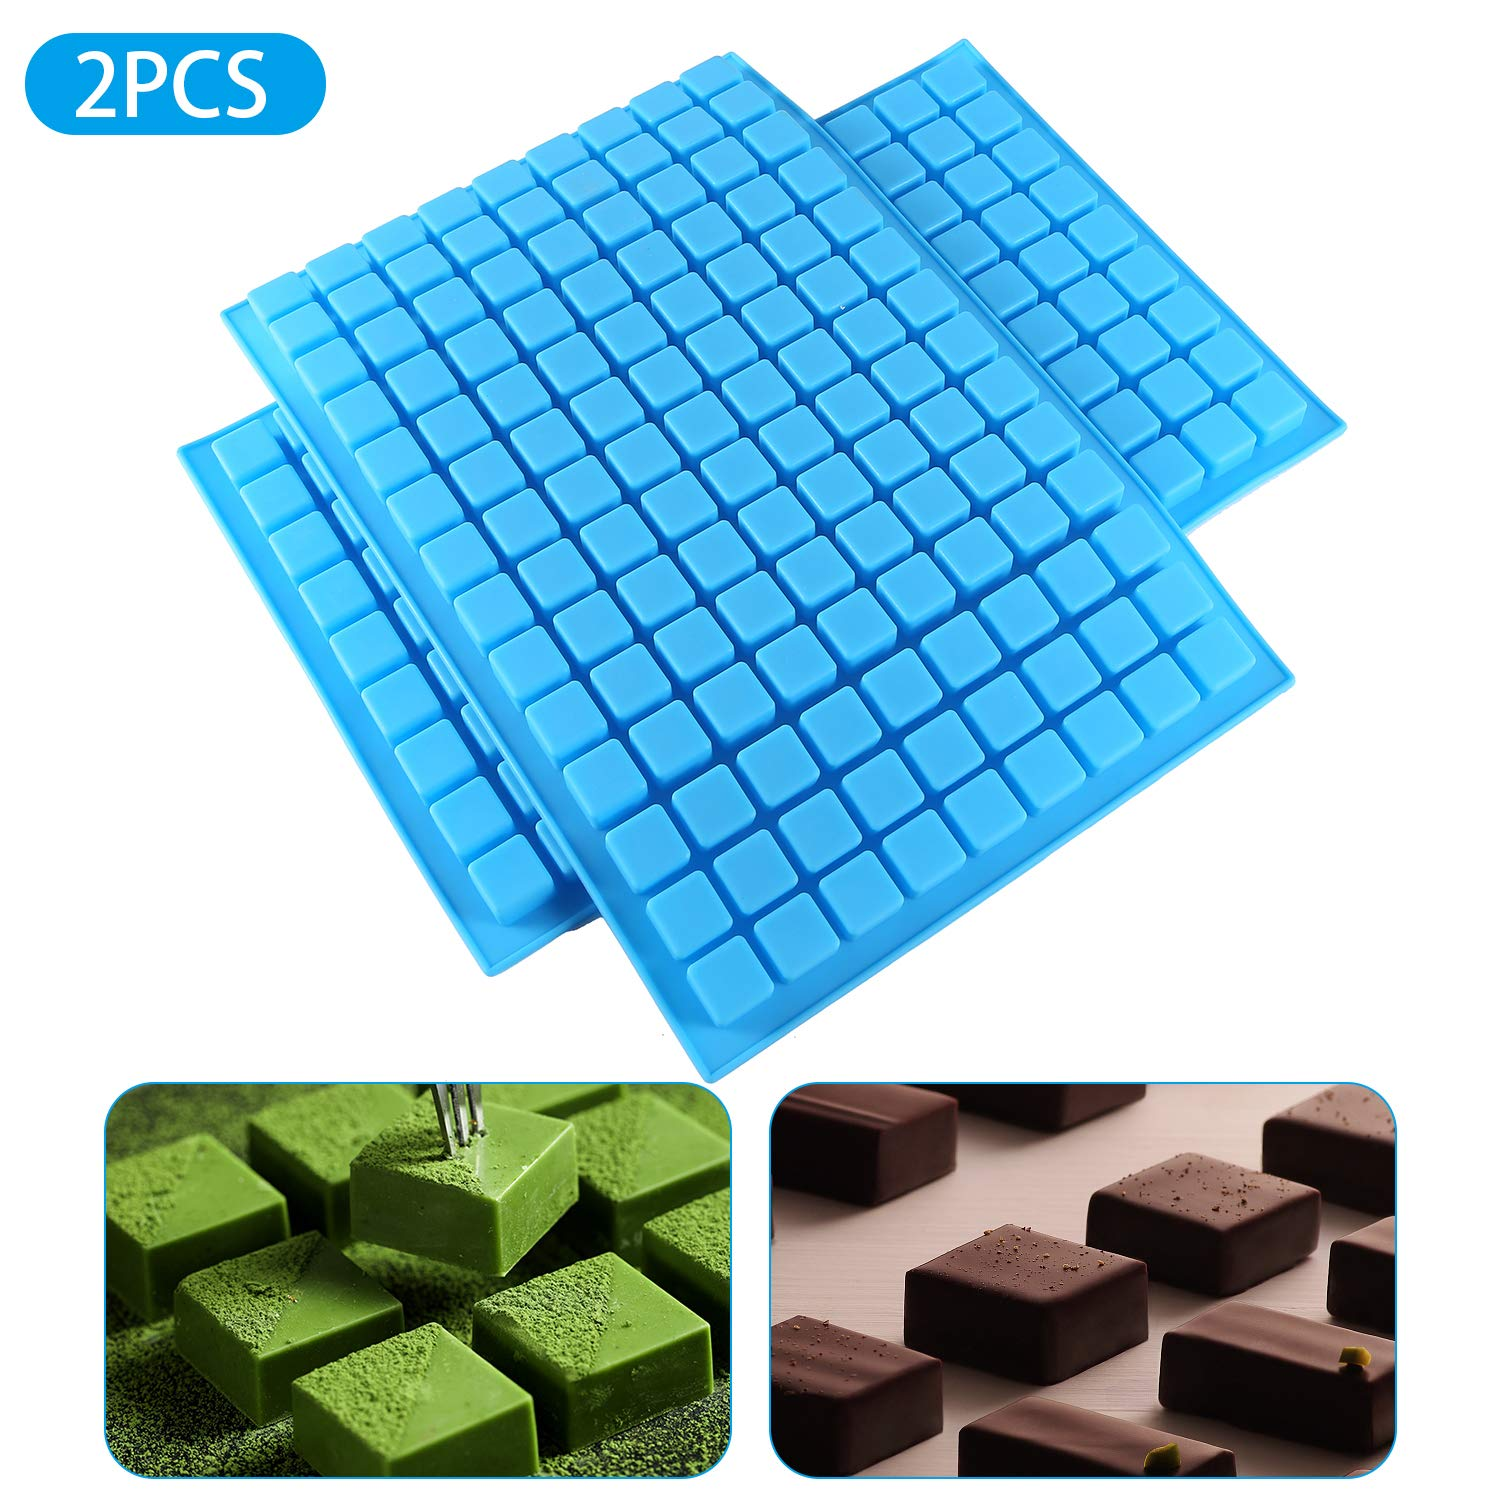 DIFENLUN Silicone Candy Molds, 2 Pack 126-Cavity Mini Square Chocolate Molds for Gummy Jelly Truffles Pralines Caramels, Ice Cube Tray Molds by DIFENLUN